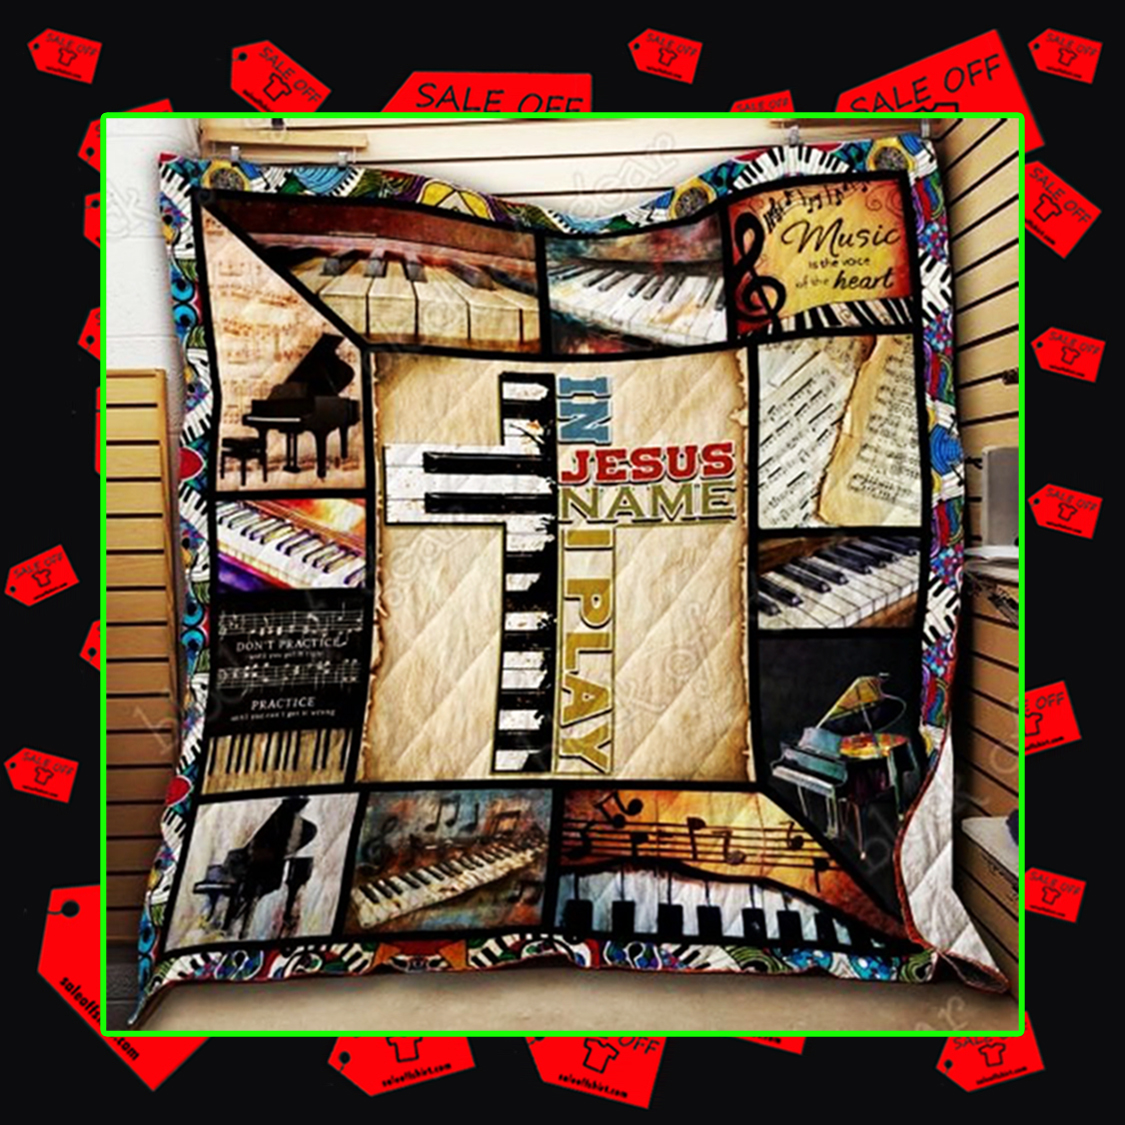 In Jesus Name I Play Piano Quilt - picture 2